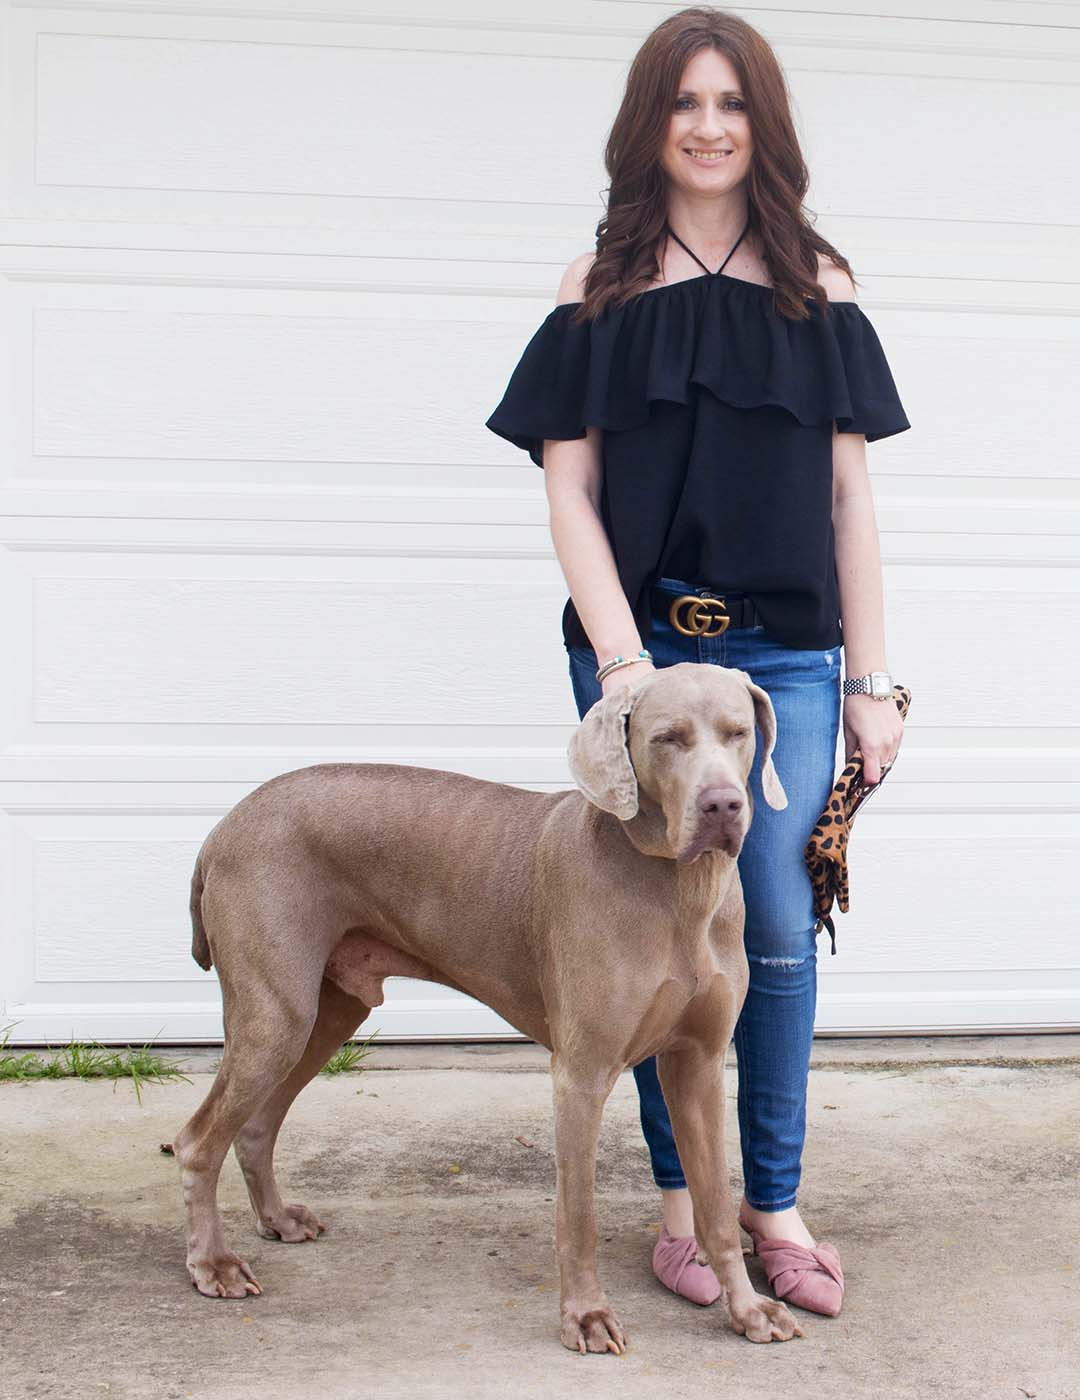 Style expert and blogger, Candie Anderson shares her BB Dakota Edmonds off the shoulder halter top in black, AG legging ankle jeans, Sam Edelman Laney mules in dusty rose pink. These items are on sale at Shopbop.